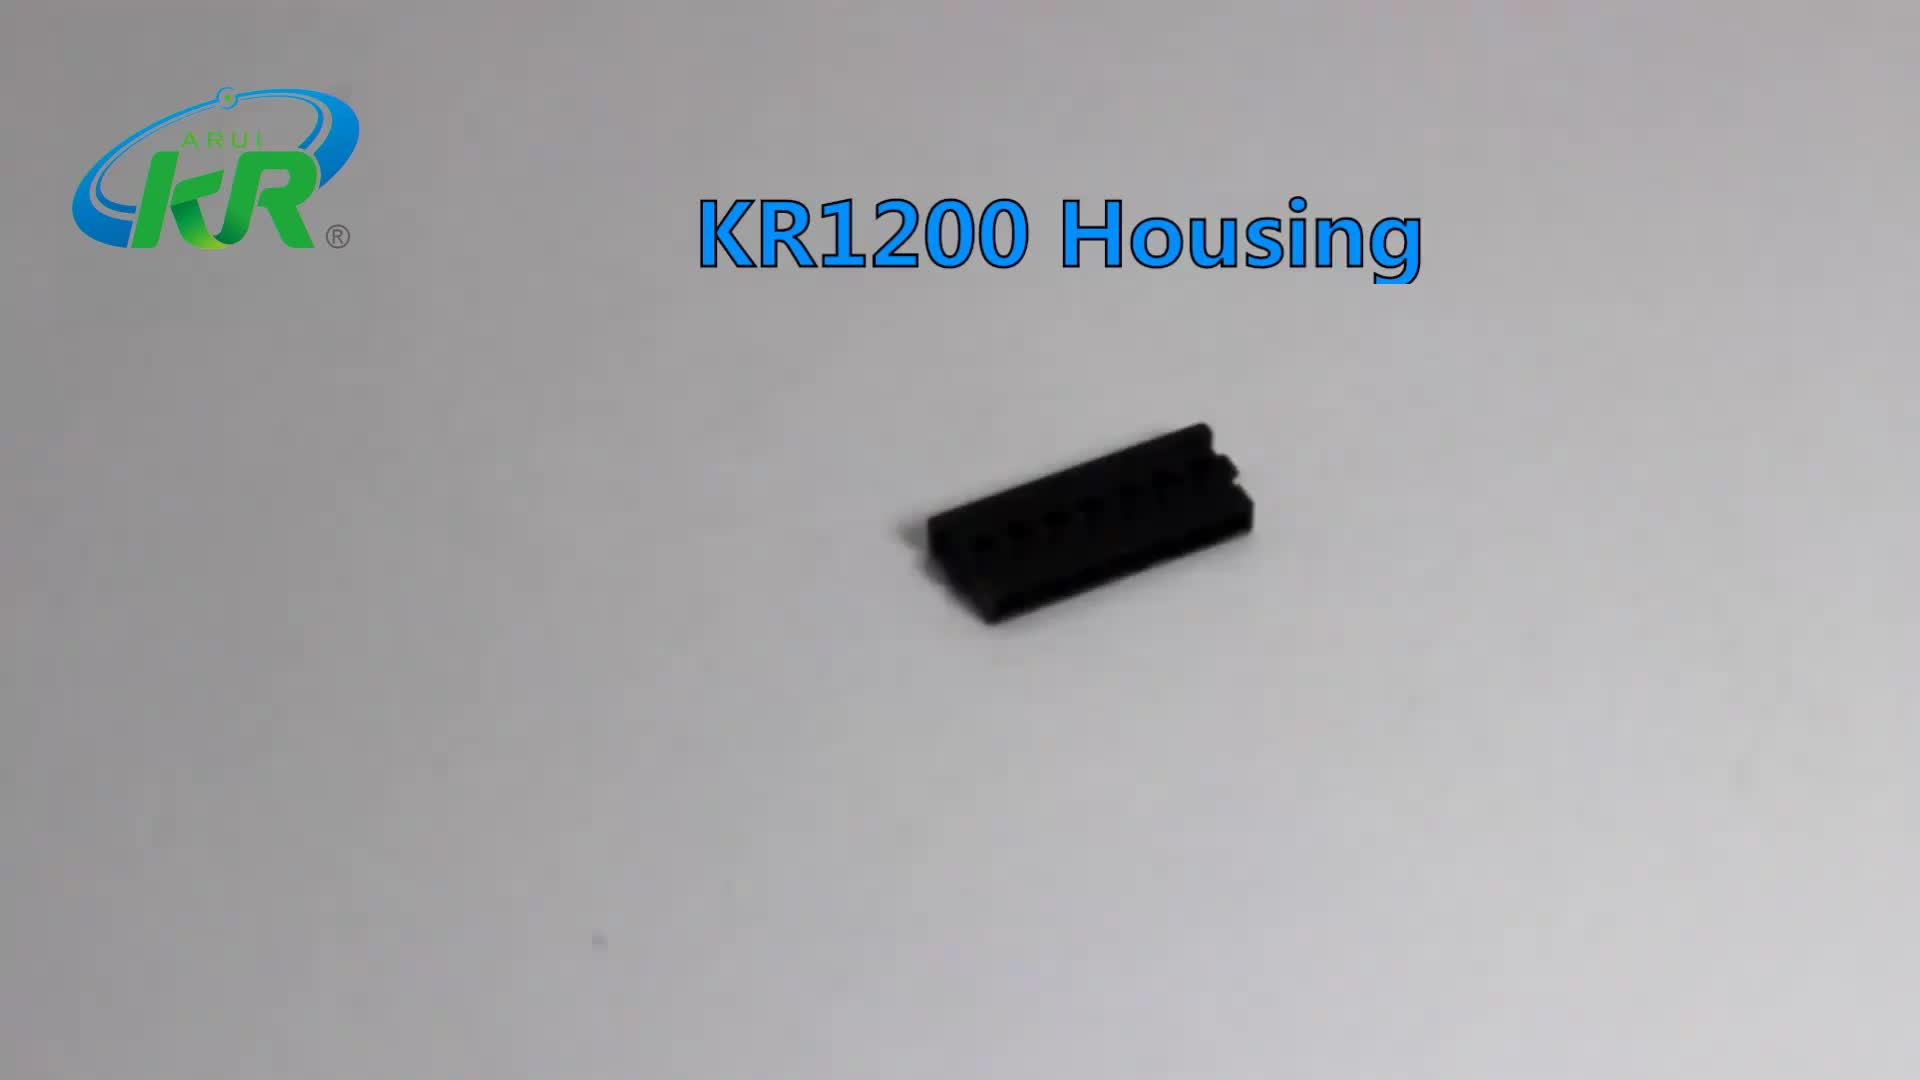 Kr1200 Molex Pico Ezmate 78181 002 Connector Equivalent Custom Wiring Harness Sd 78171 008